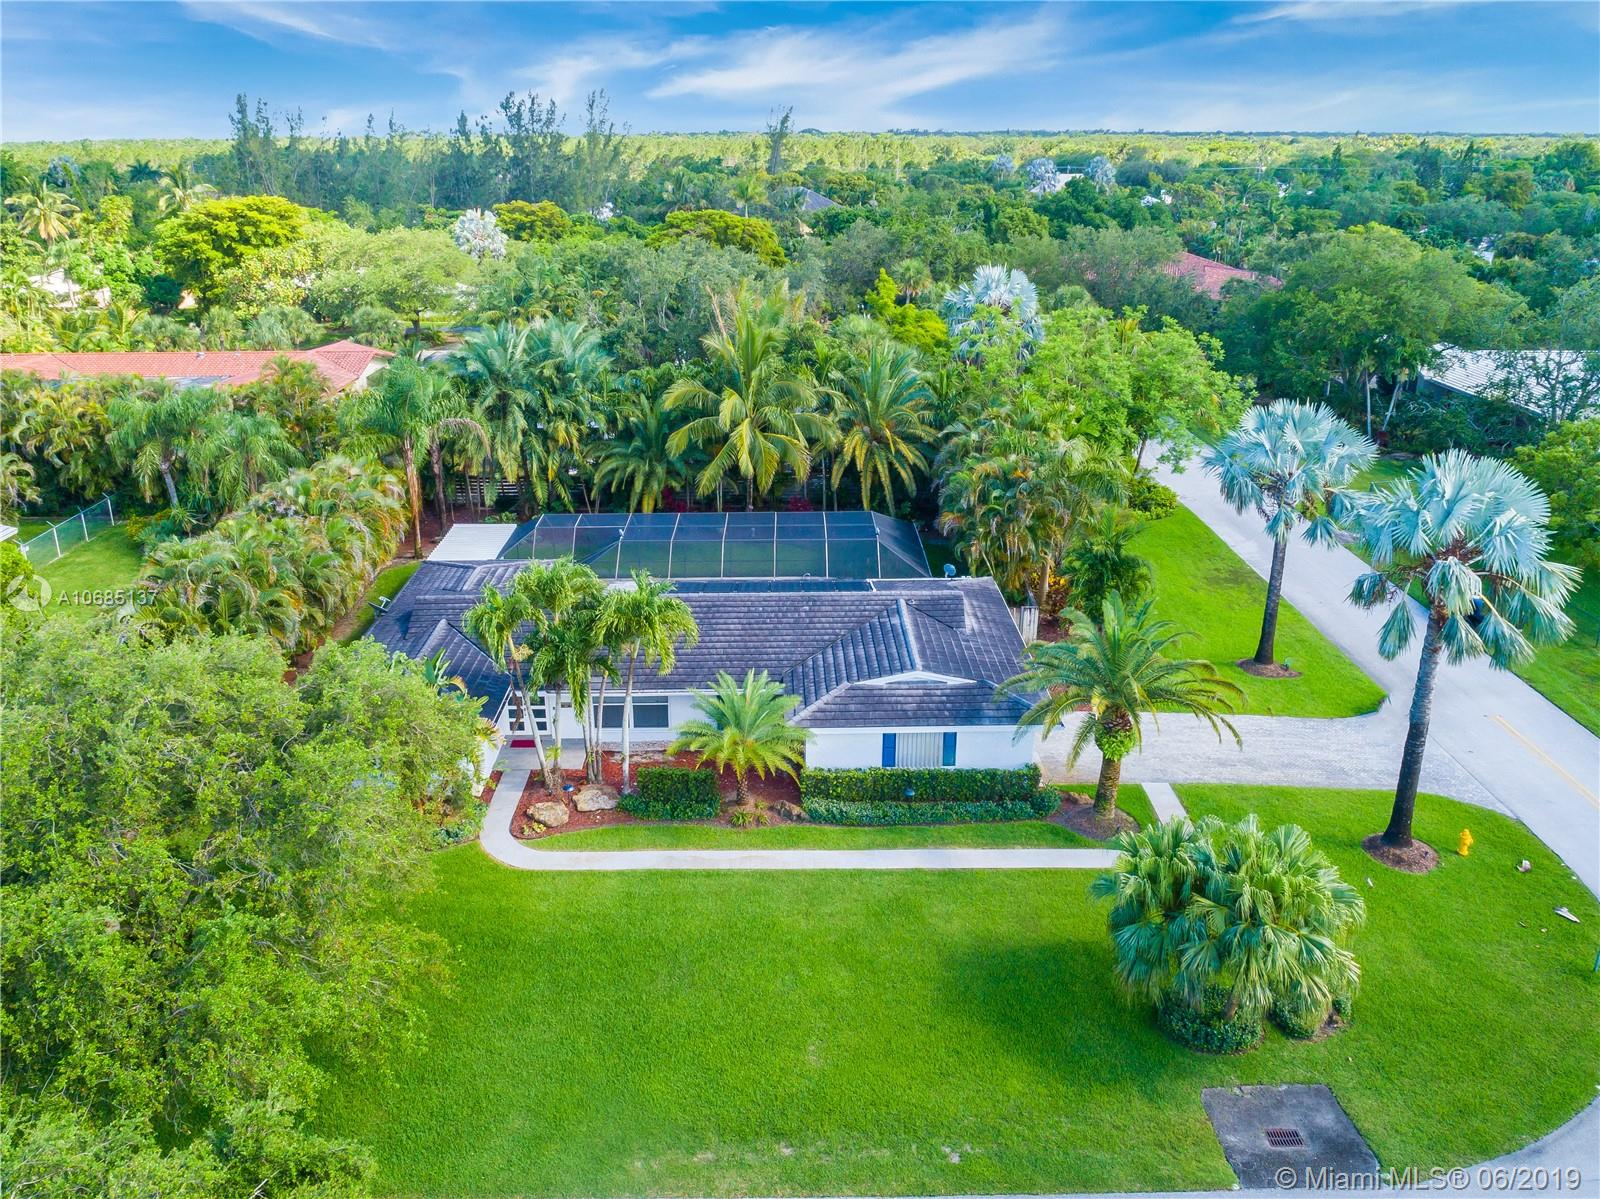 7020 SW 148th Ter, Kendall, Florida